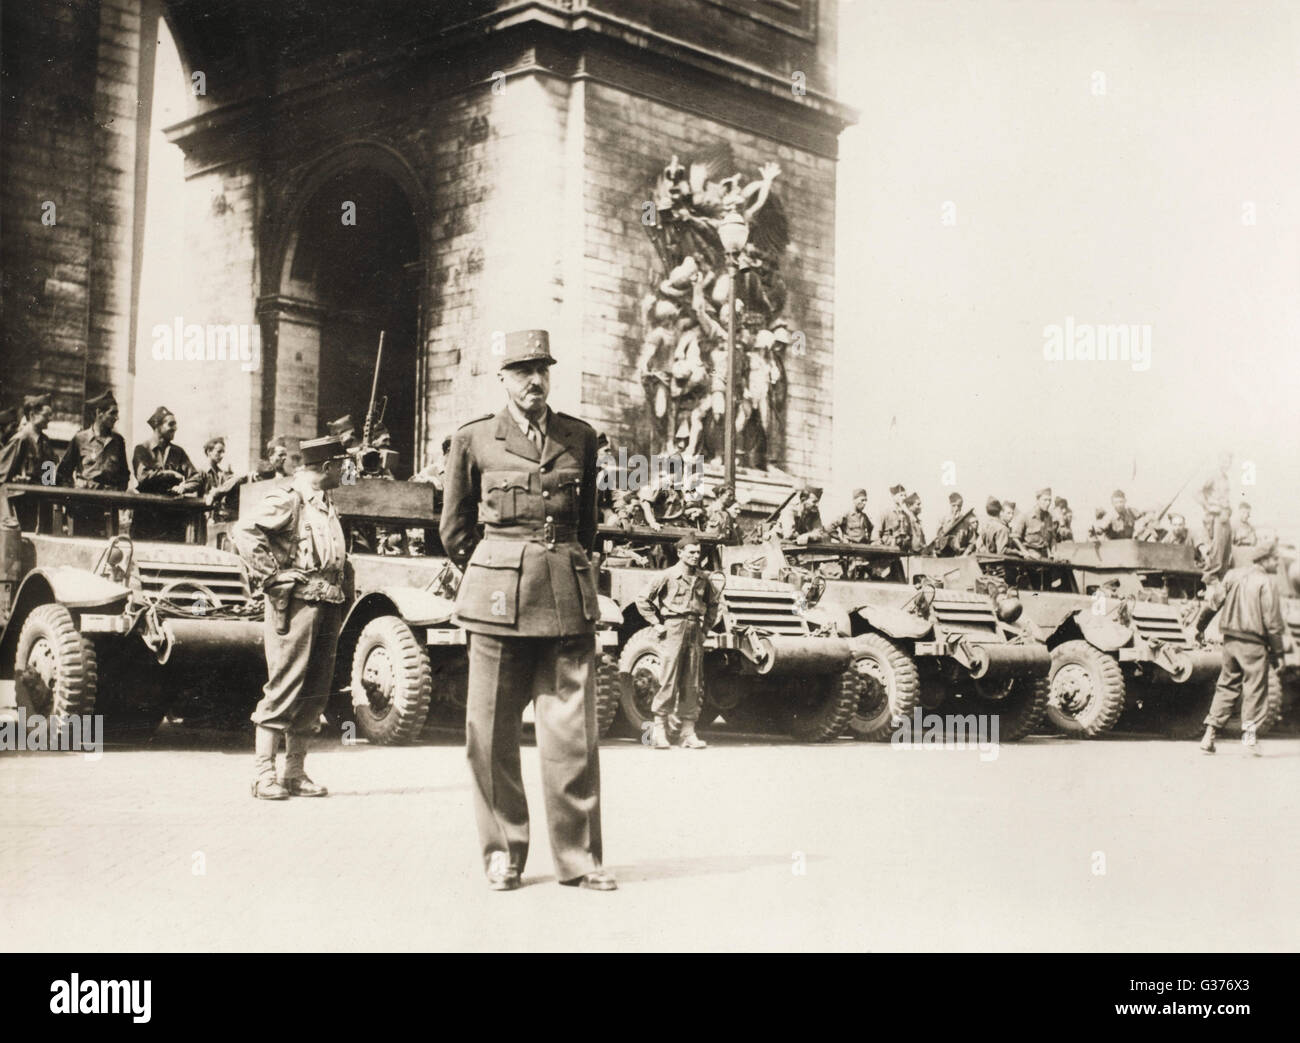 General Koenig with General Lelerc's Troops at the Arc de Triomphe, Paris, 1944 - from a collection of postcard - Stock Image